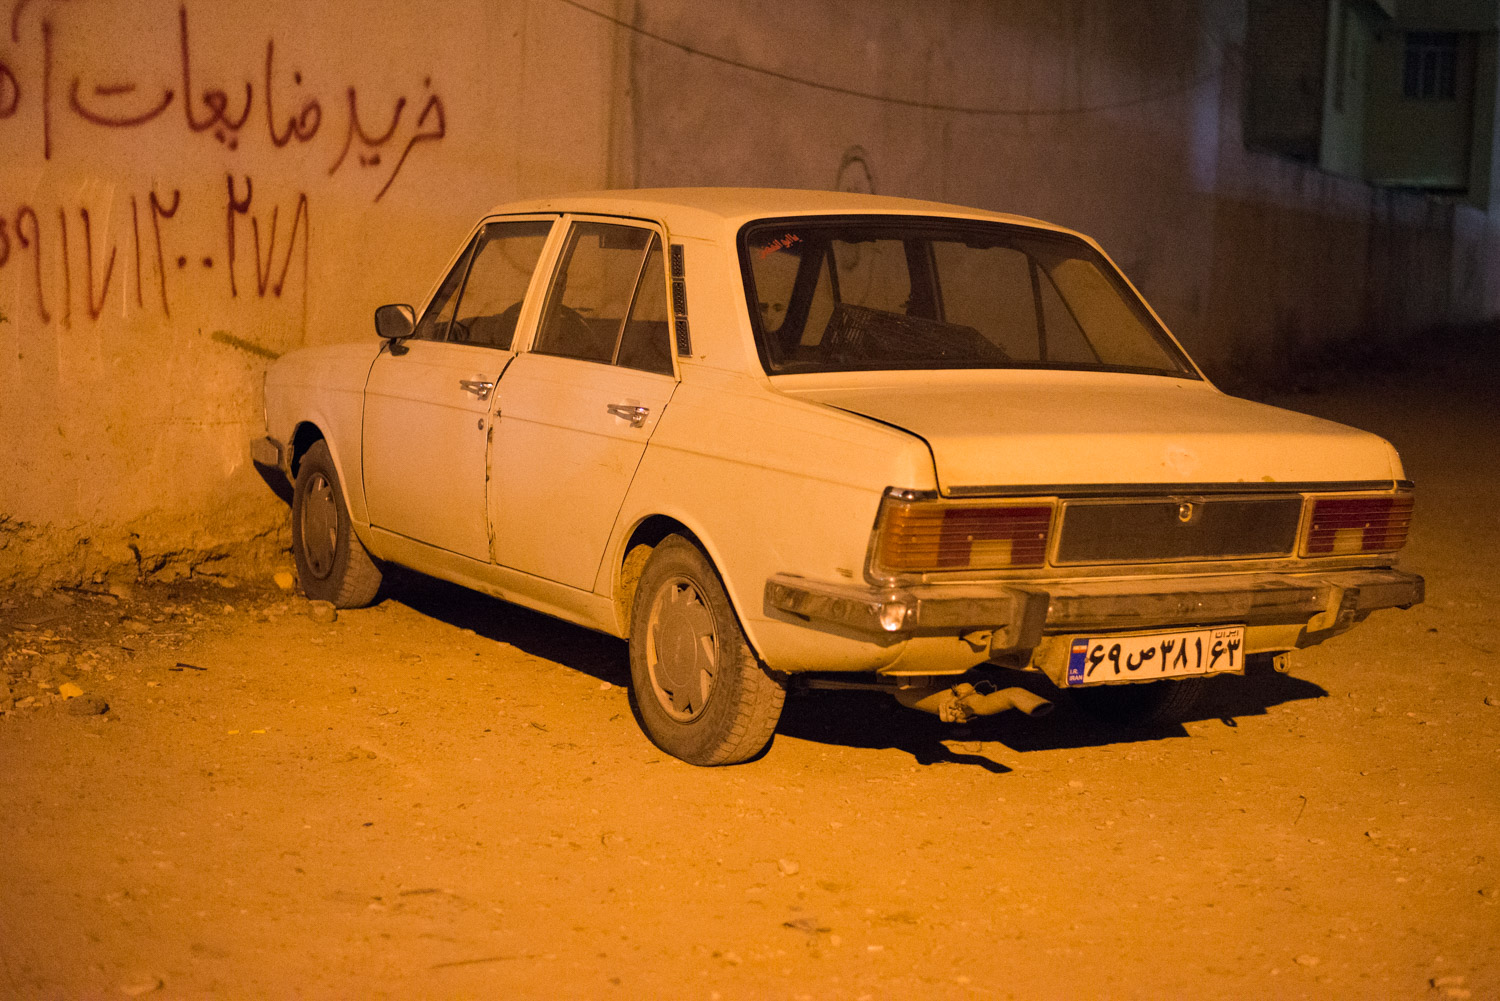 The ubiquitous car of post 1979 Iran. The ex Hillman Hunter from the UK was manufactured in huge numbers near Teheran and they are still widely seen all over the country.